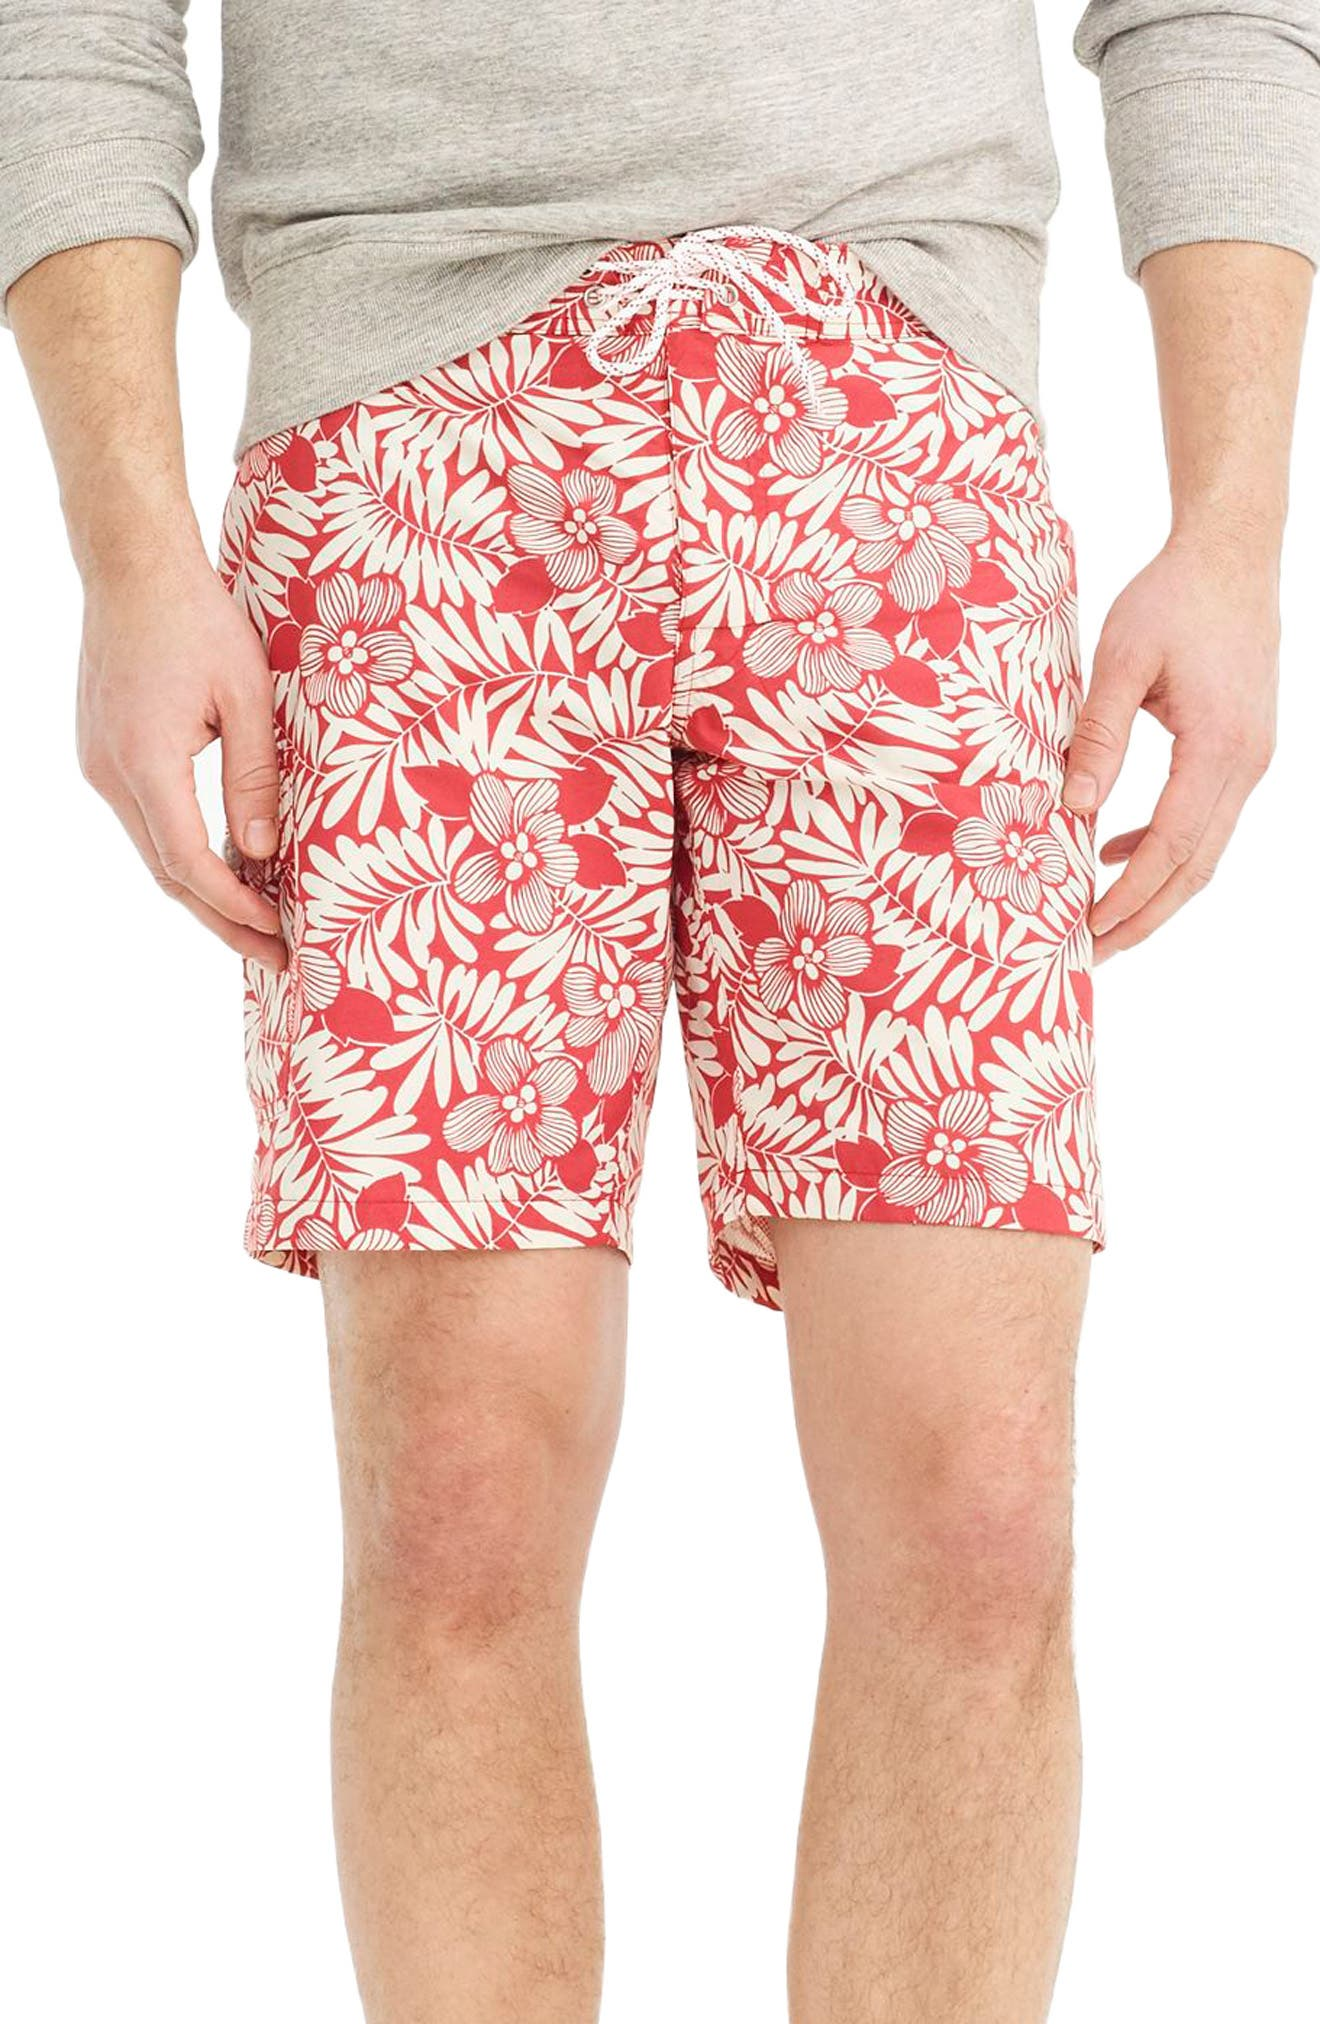 Fern Print Board Shorts,                             Main thumbnail 1, color,                             Red Ivory